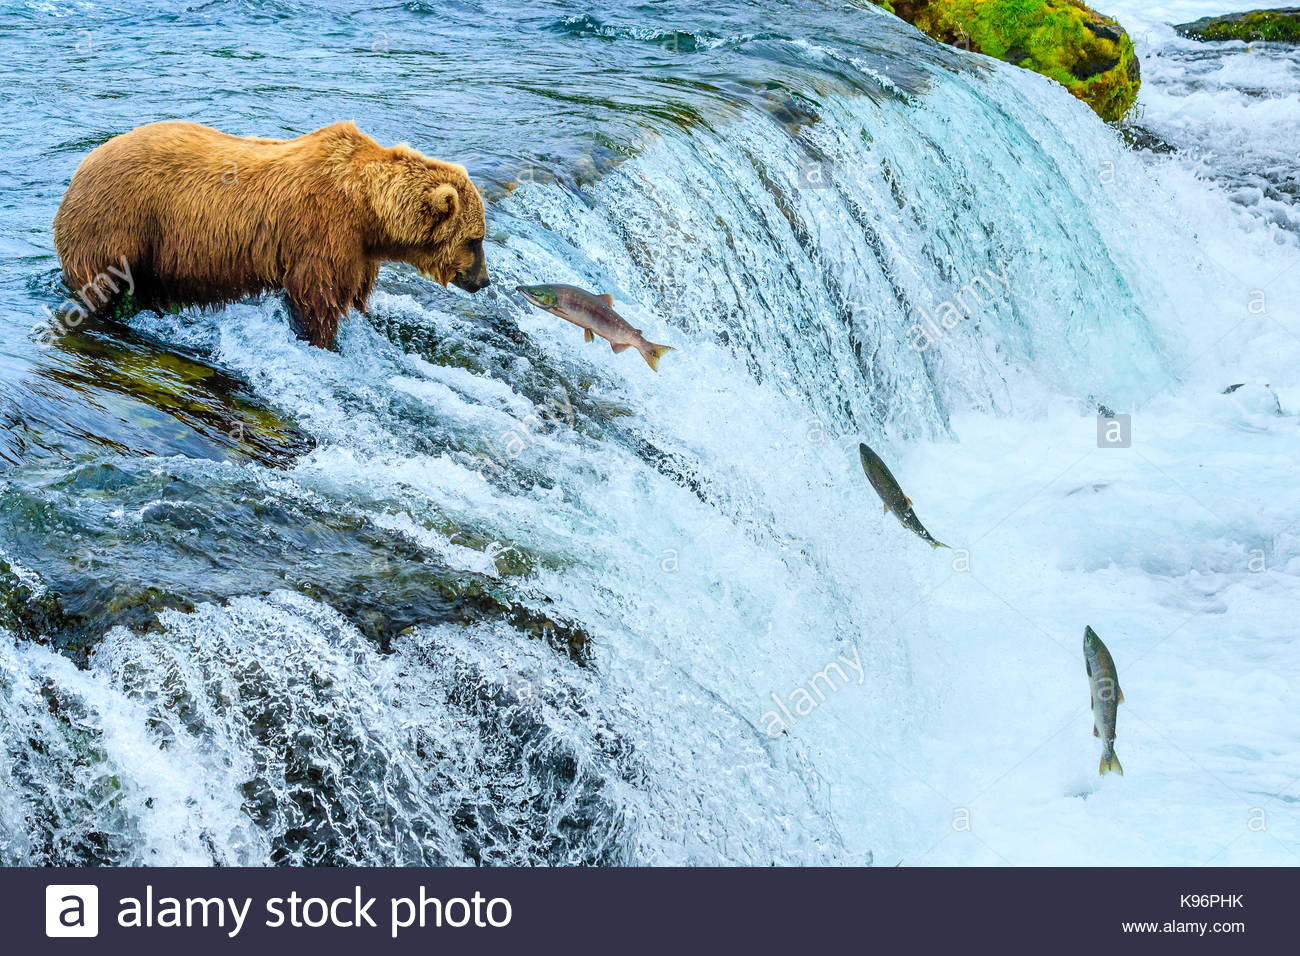 Brown bear, Ursus arctos, fishing for sockeye salmon at Brooks Falls. - Stock Image